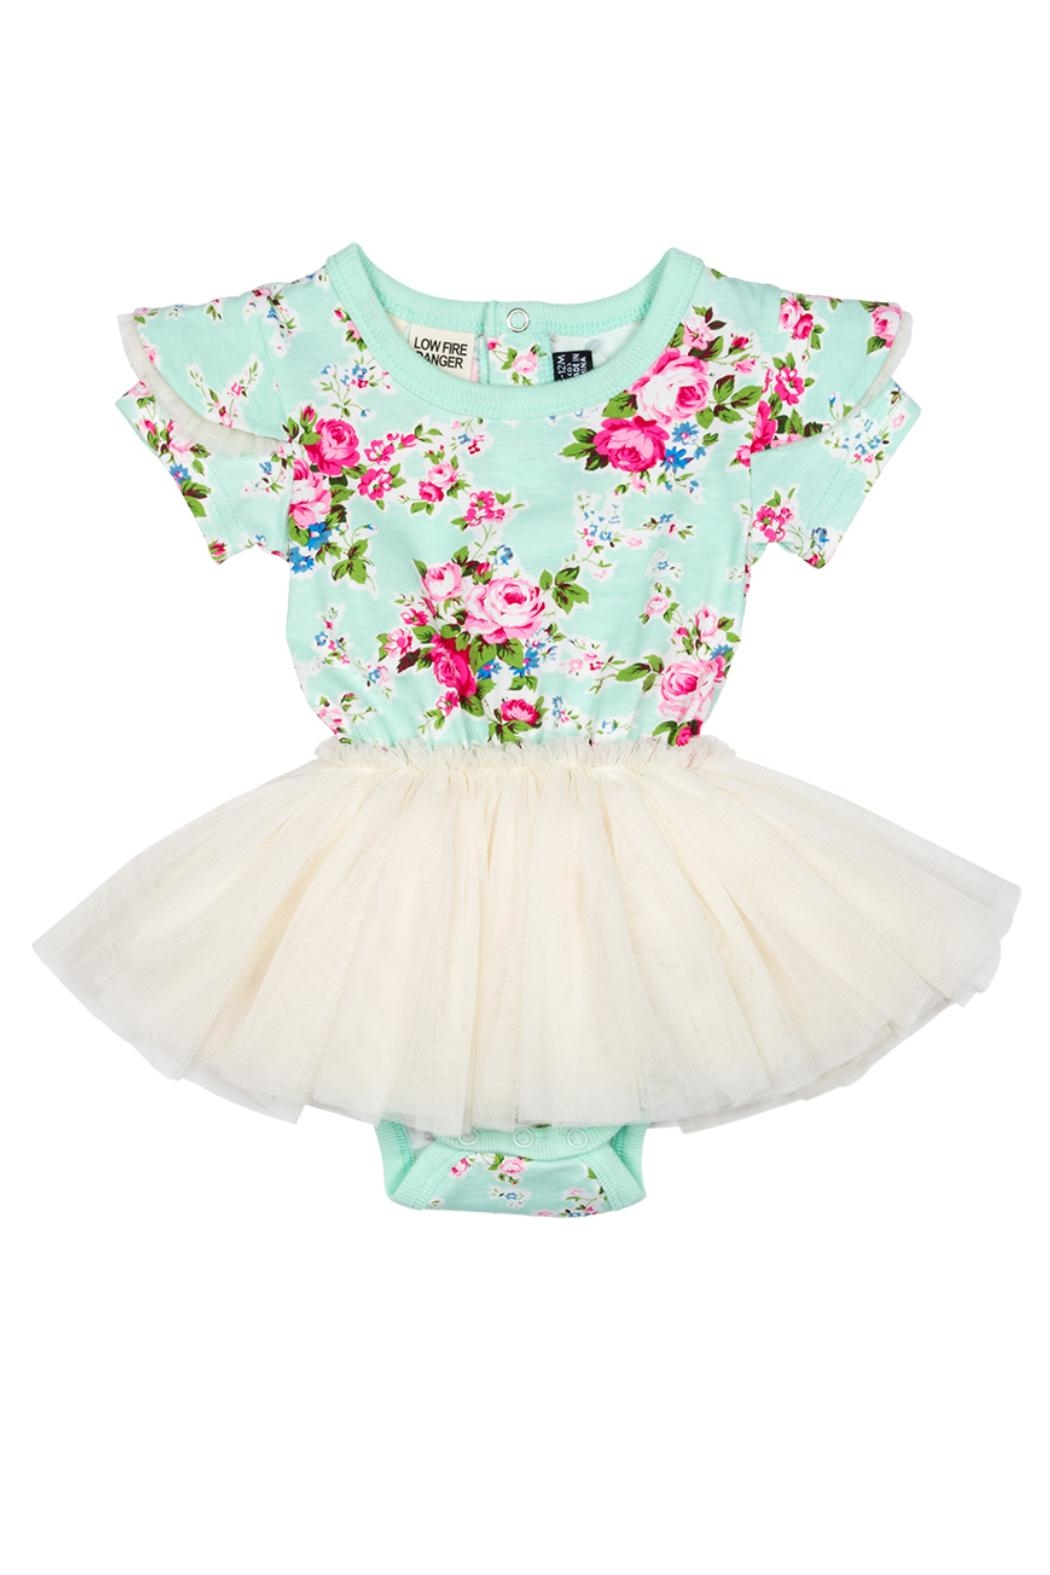 28068a7b3 Rock Your Baby Maeve Circus Dress from Ireland by Mira Mira — Shoptiques